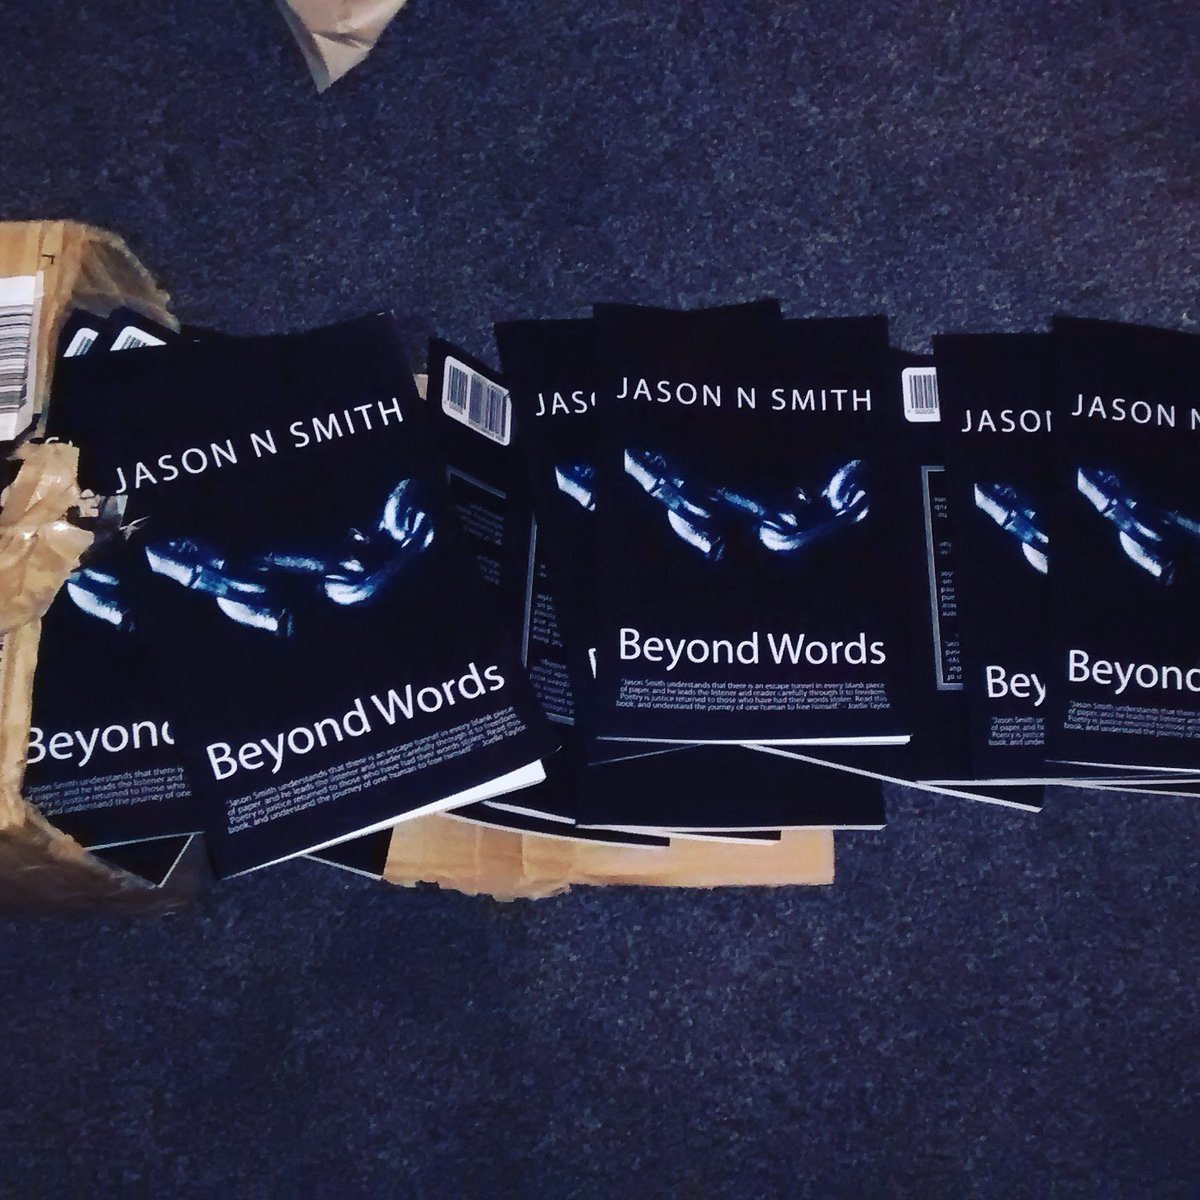 #sotaaw working on new book Beyond Words. And now it is finished! #poetry #spokenword #inpiration and #insight @AmazonUK<br>http://pic.twitter.com/bwILomHAiu